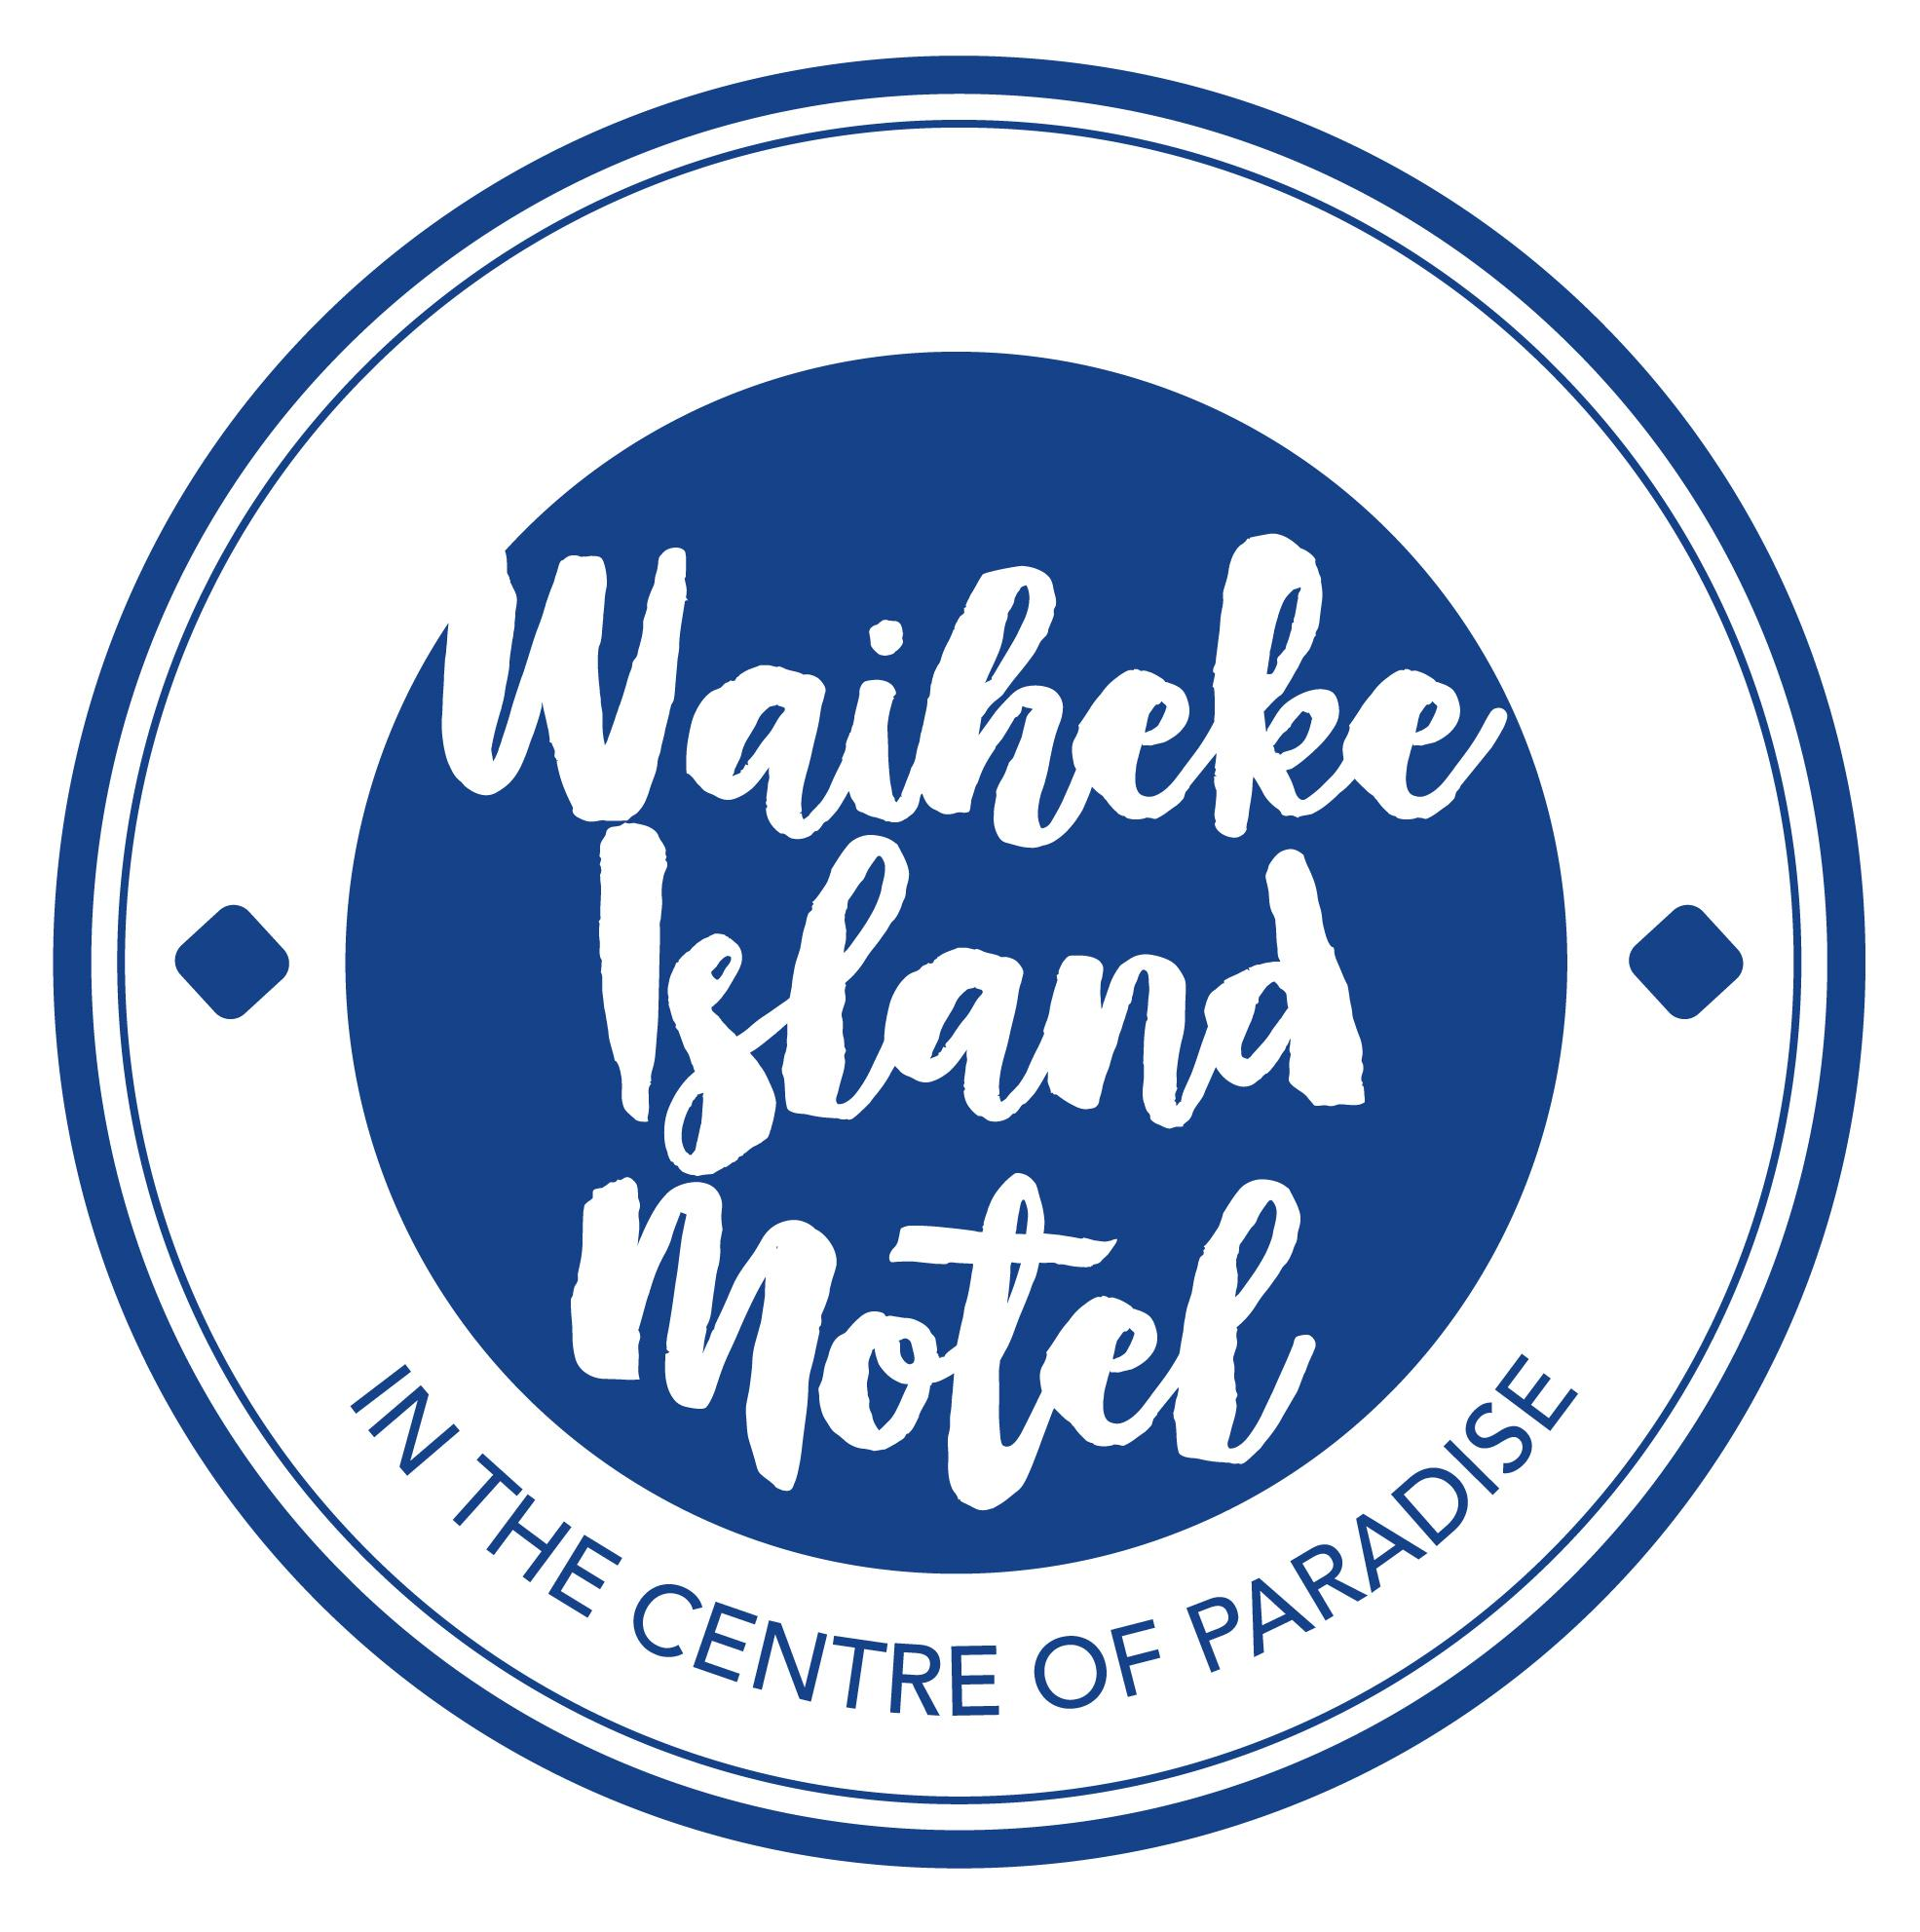 Waiheke Island Motel (formerly Midway Motel)